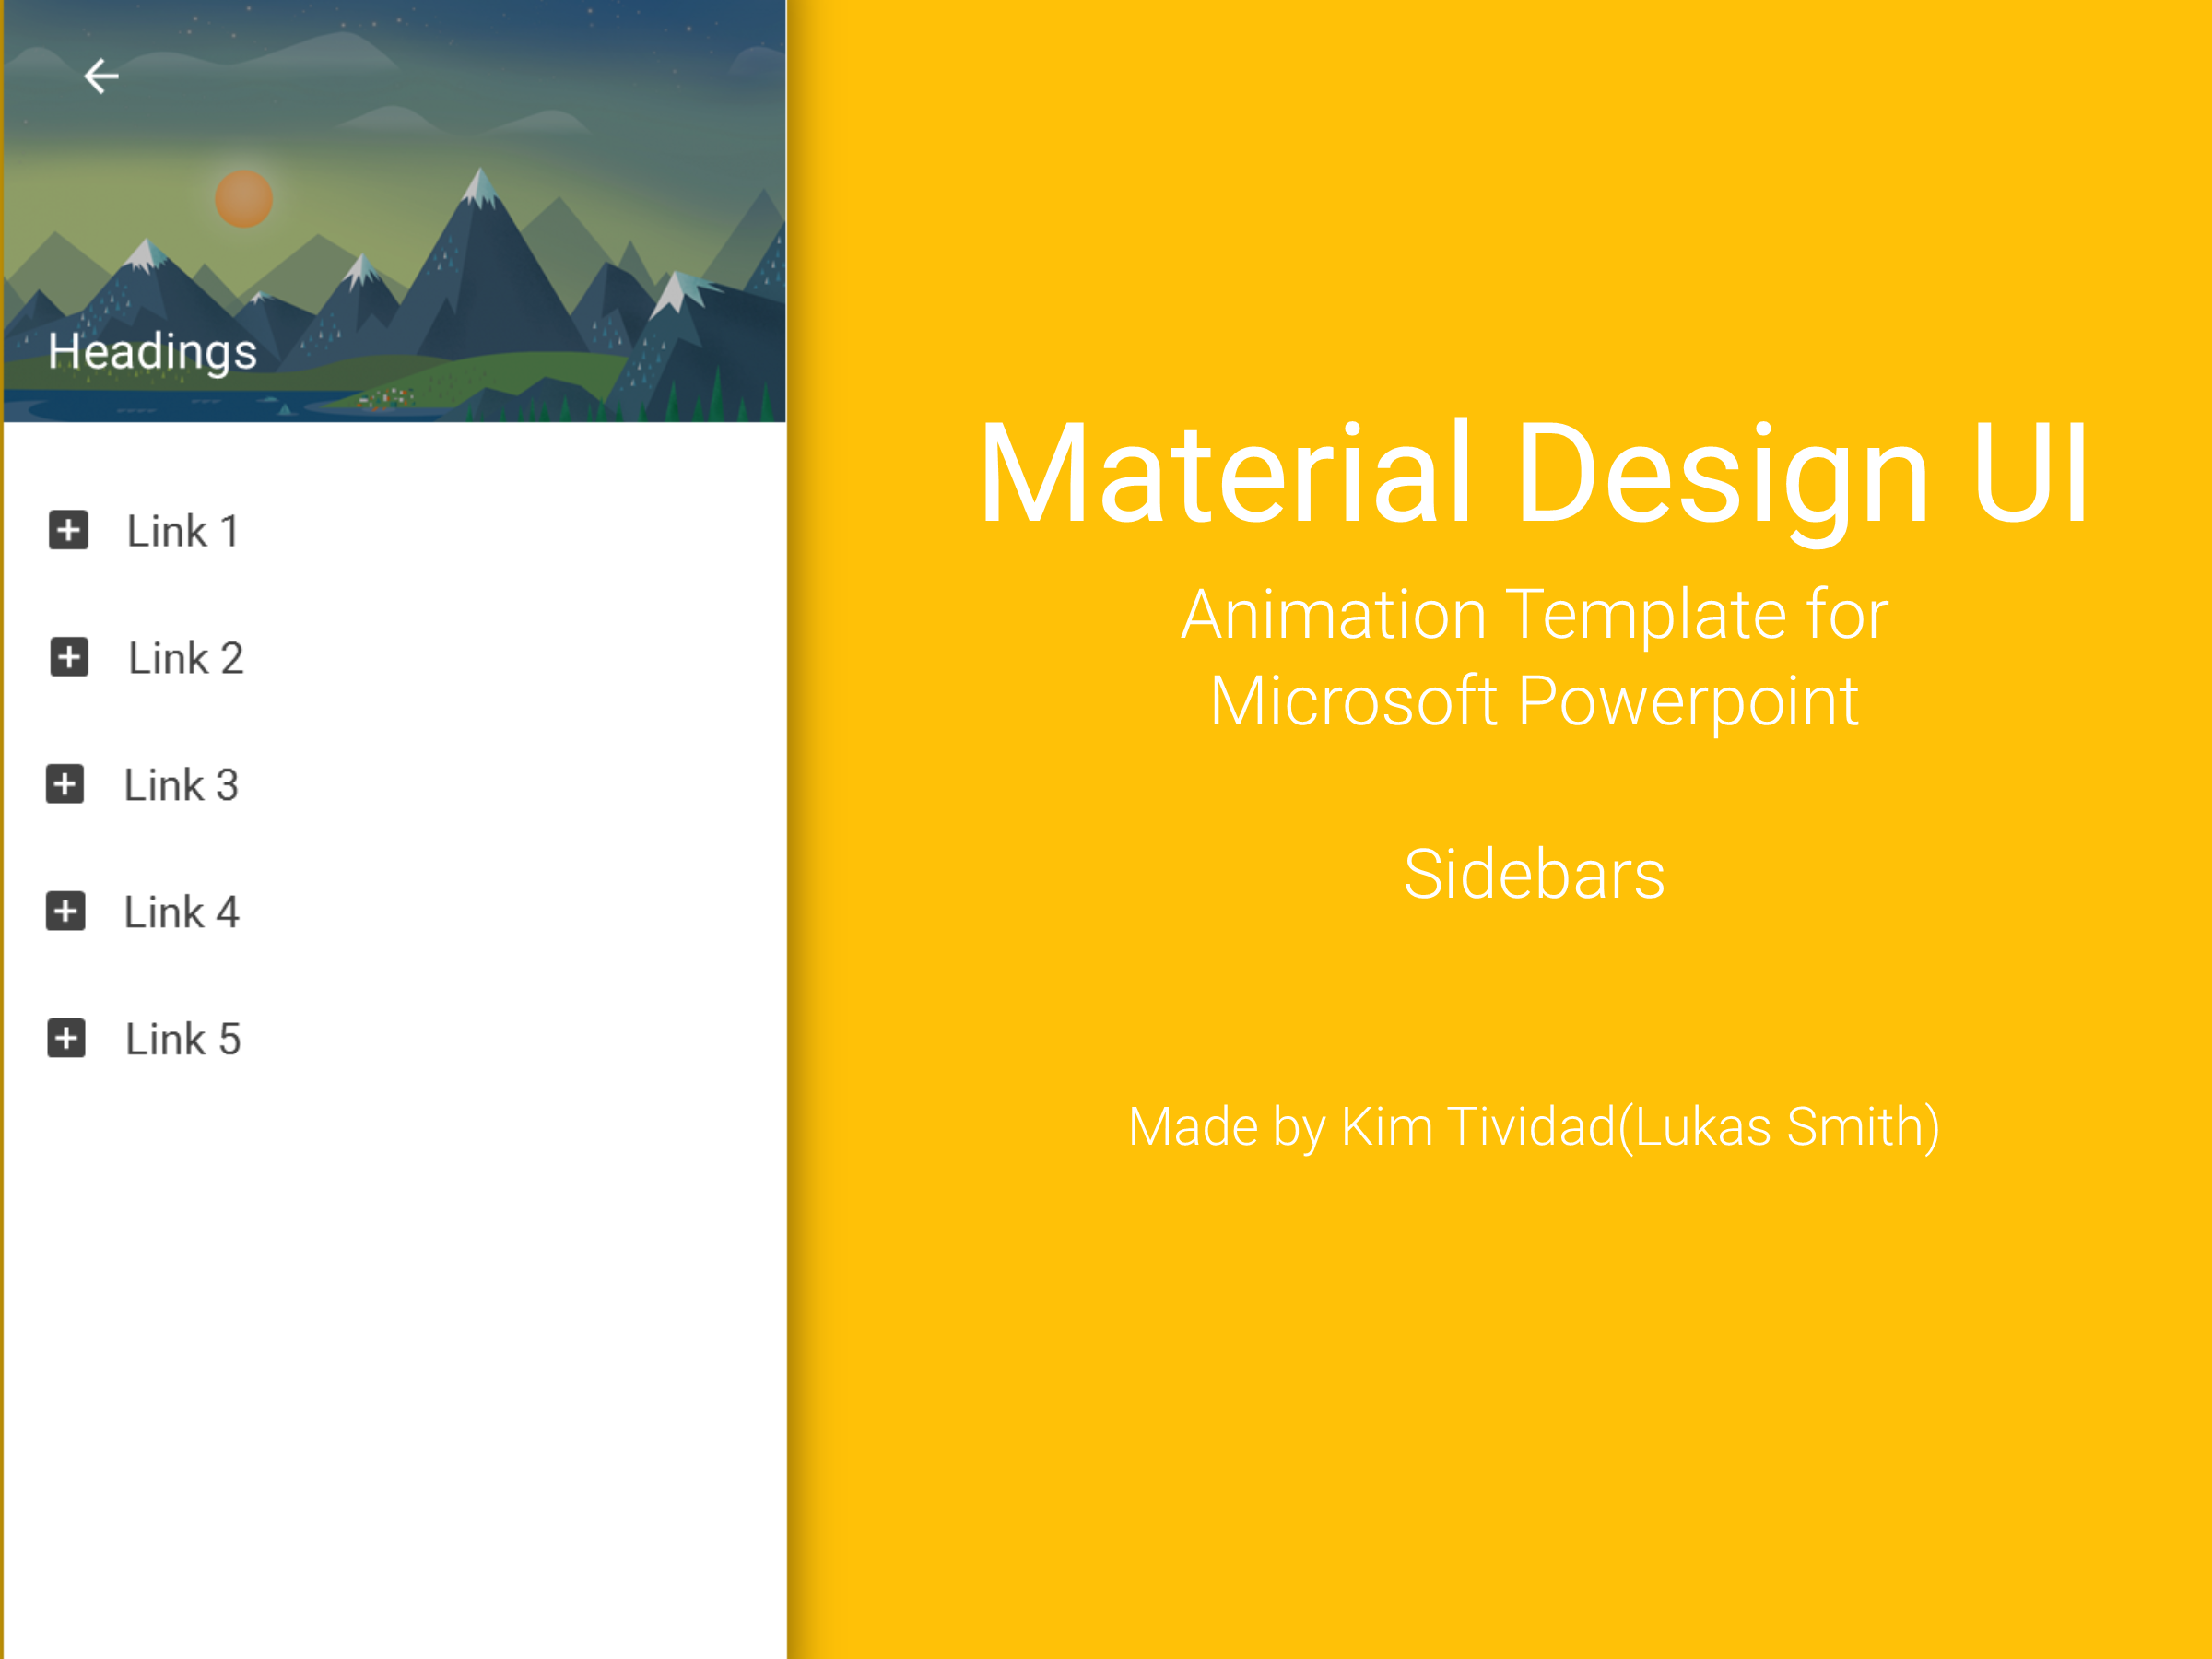 Android examples with powerpoint uplabs removeredeye2220forum1filedownload286 toneelgroepblik Choice Image